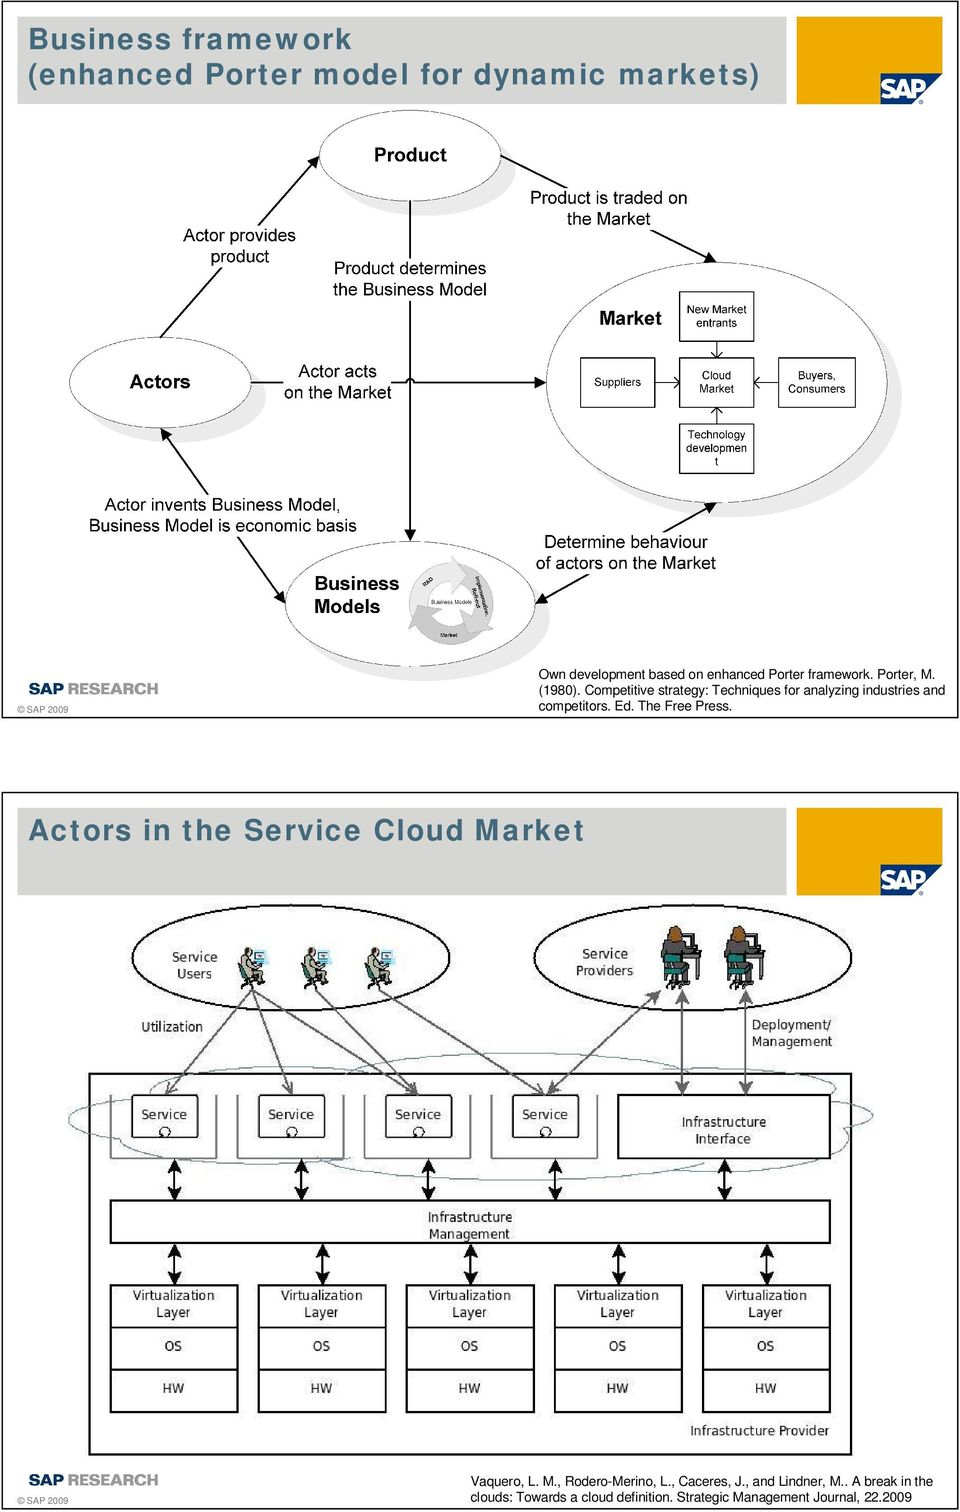 Ed. The Free Press. Actors in the Service Cloud Market Vaquero, L. M., Rodero-Merino, L., Caceres, J.